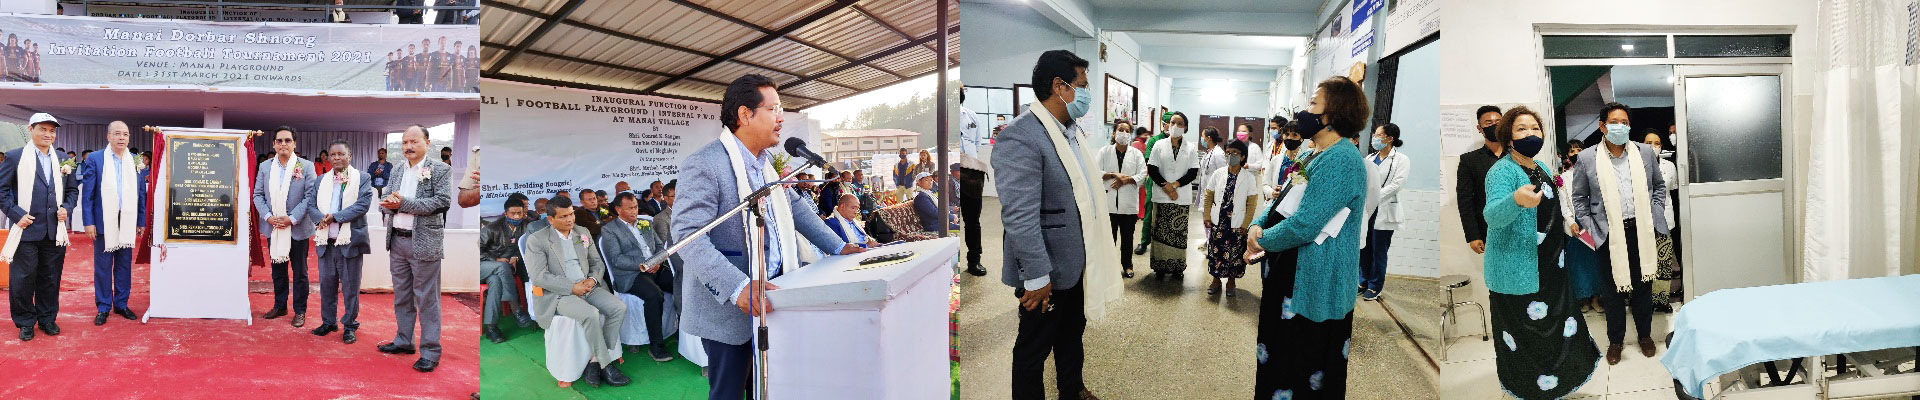 CM inaugurated the Dorbar Hall, Football Playground, Internal PWD Road, VIP Gallery and inspected the U Tirot Sing Hospital at Mairang